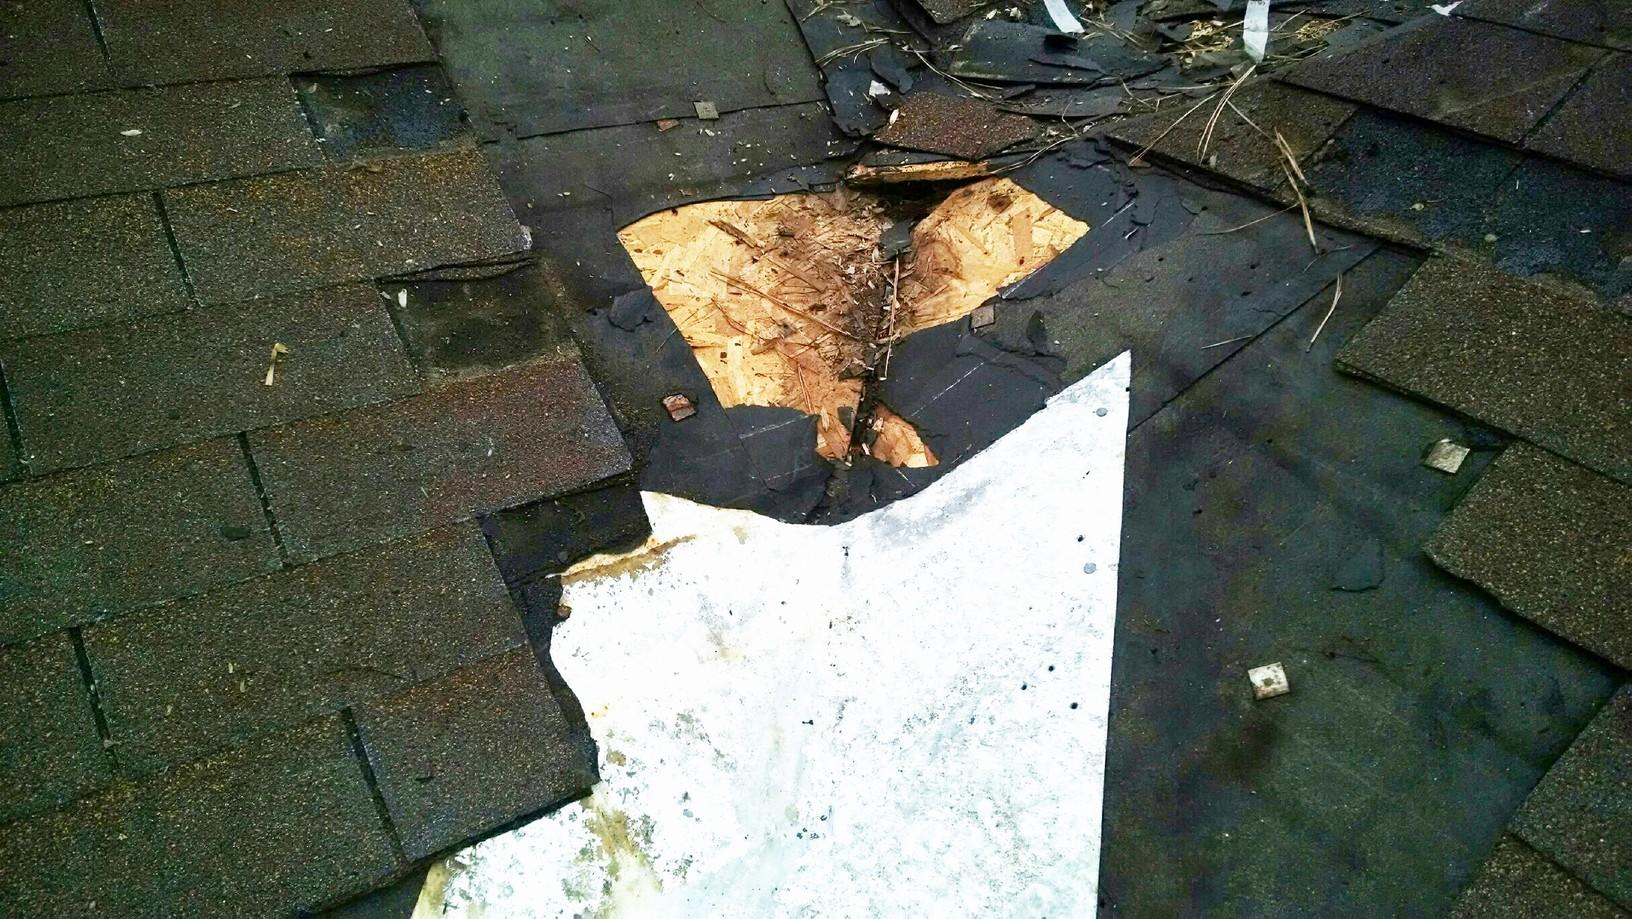 Water Damage from Roof Leak in Gardendale, AL - Before Photo